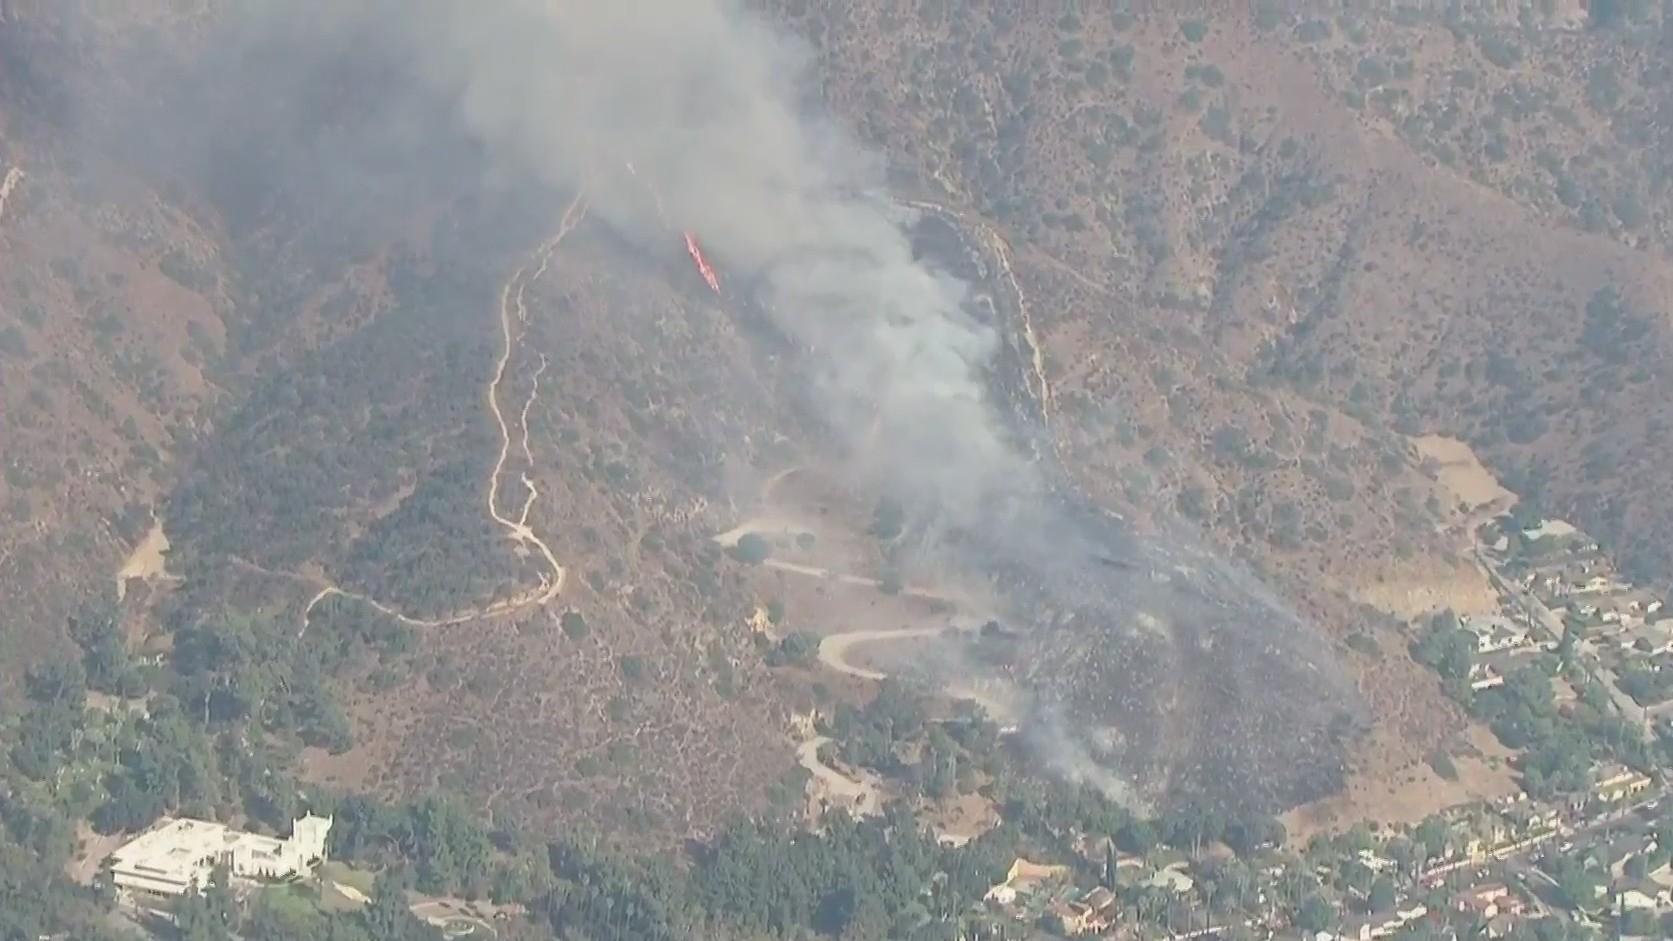 A brush fire spreads near Brand Park in Glendale on Oct. 27, 2020. (KTLA)